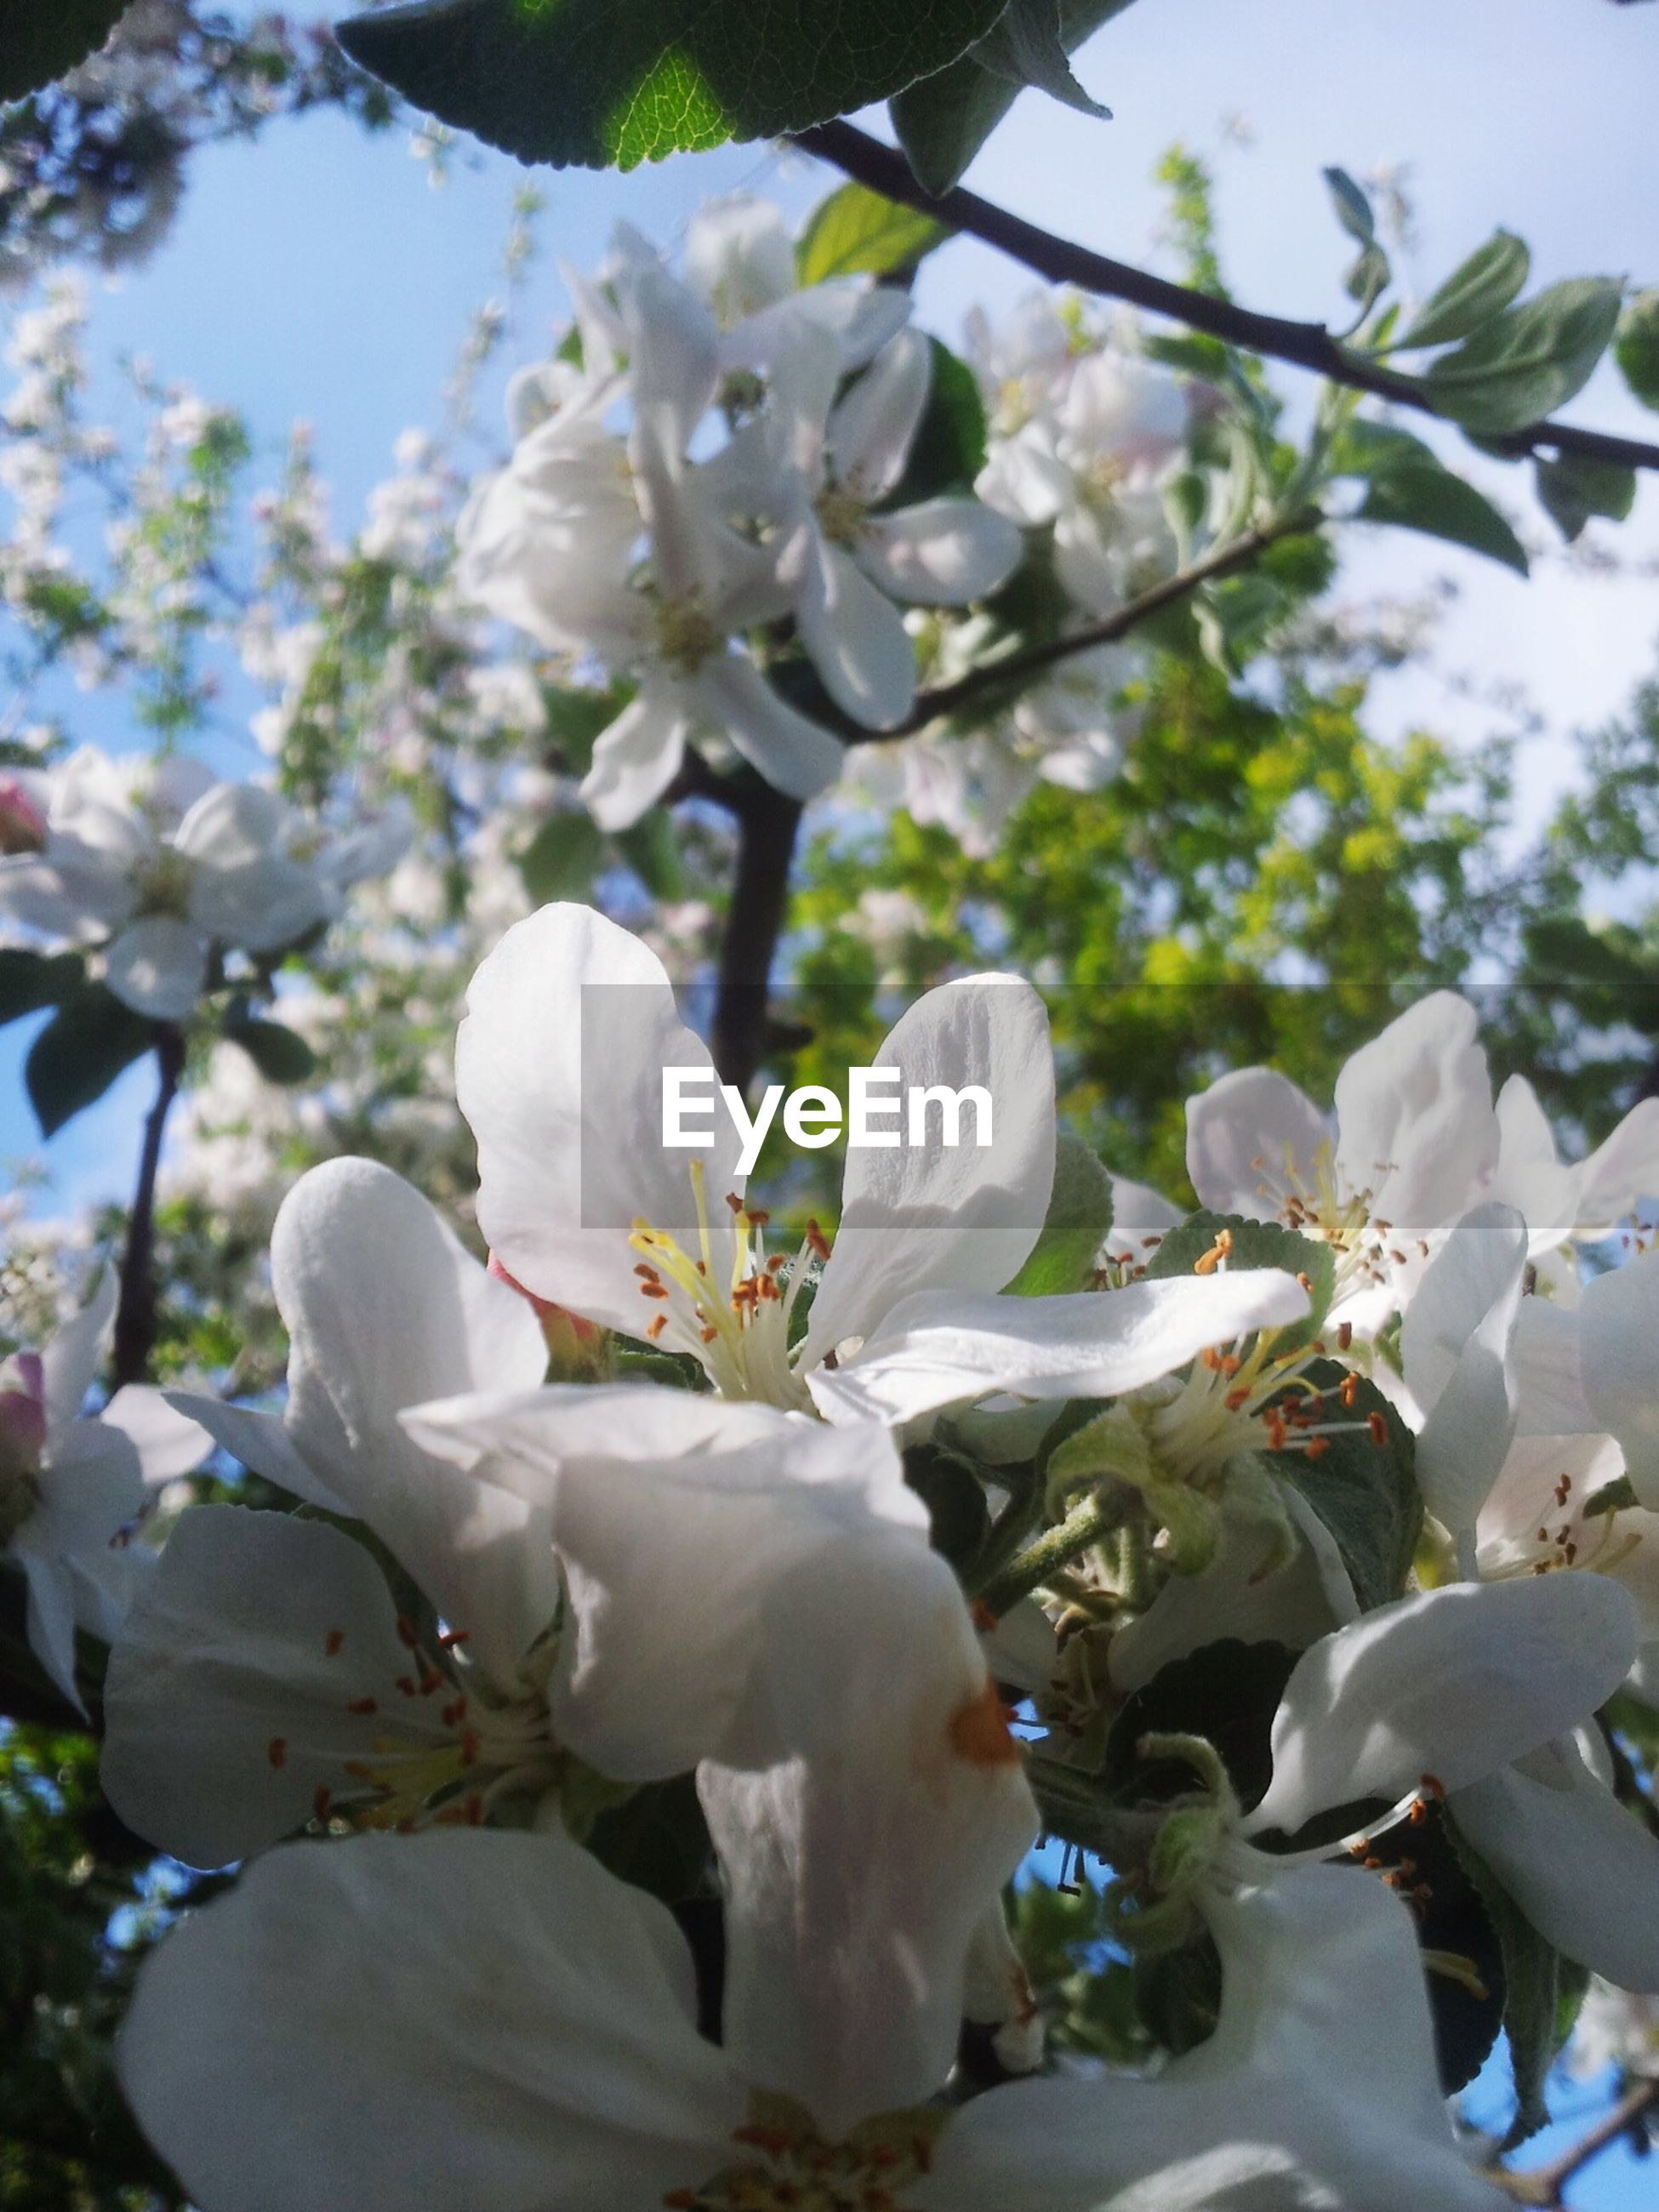 flower, white color, growth, freshness, fragility, tree, branch, petal, nature, cherry blossom, beauty in nature, focus on foreground, close-up, blooming, blossom, leaf, flower head, park - man made space, cherry tree, in bloom